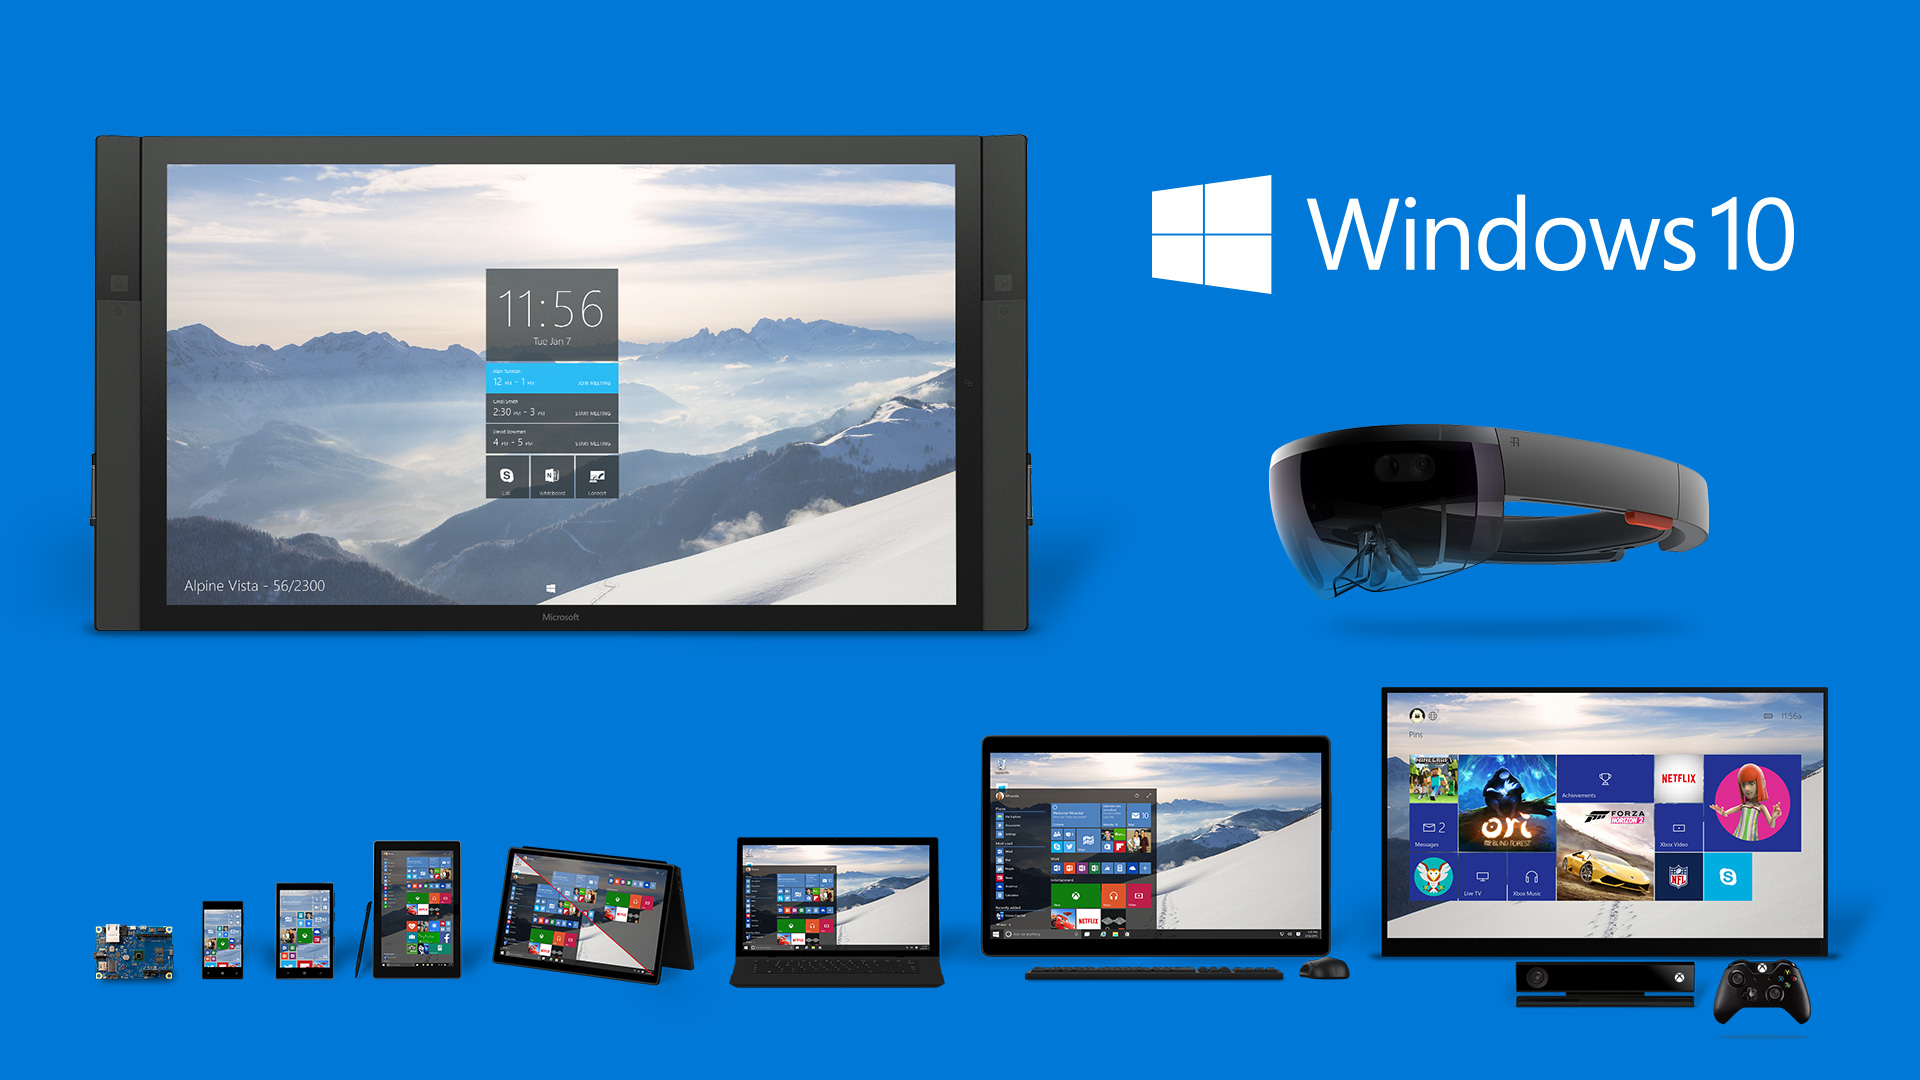 Windows-10-product-family-easyvirtu.com_.jpg